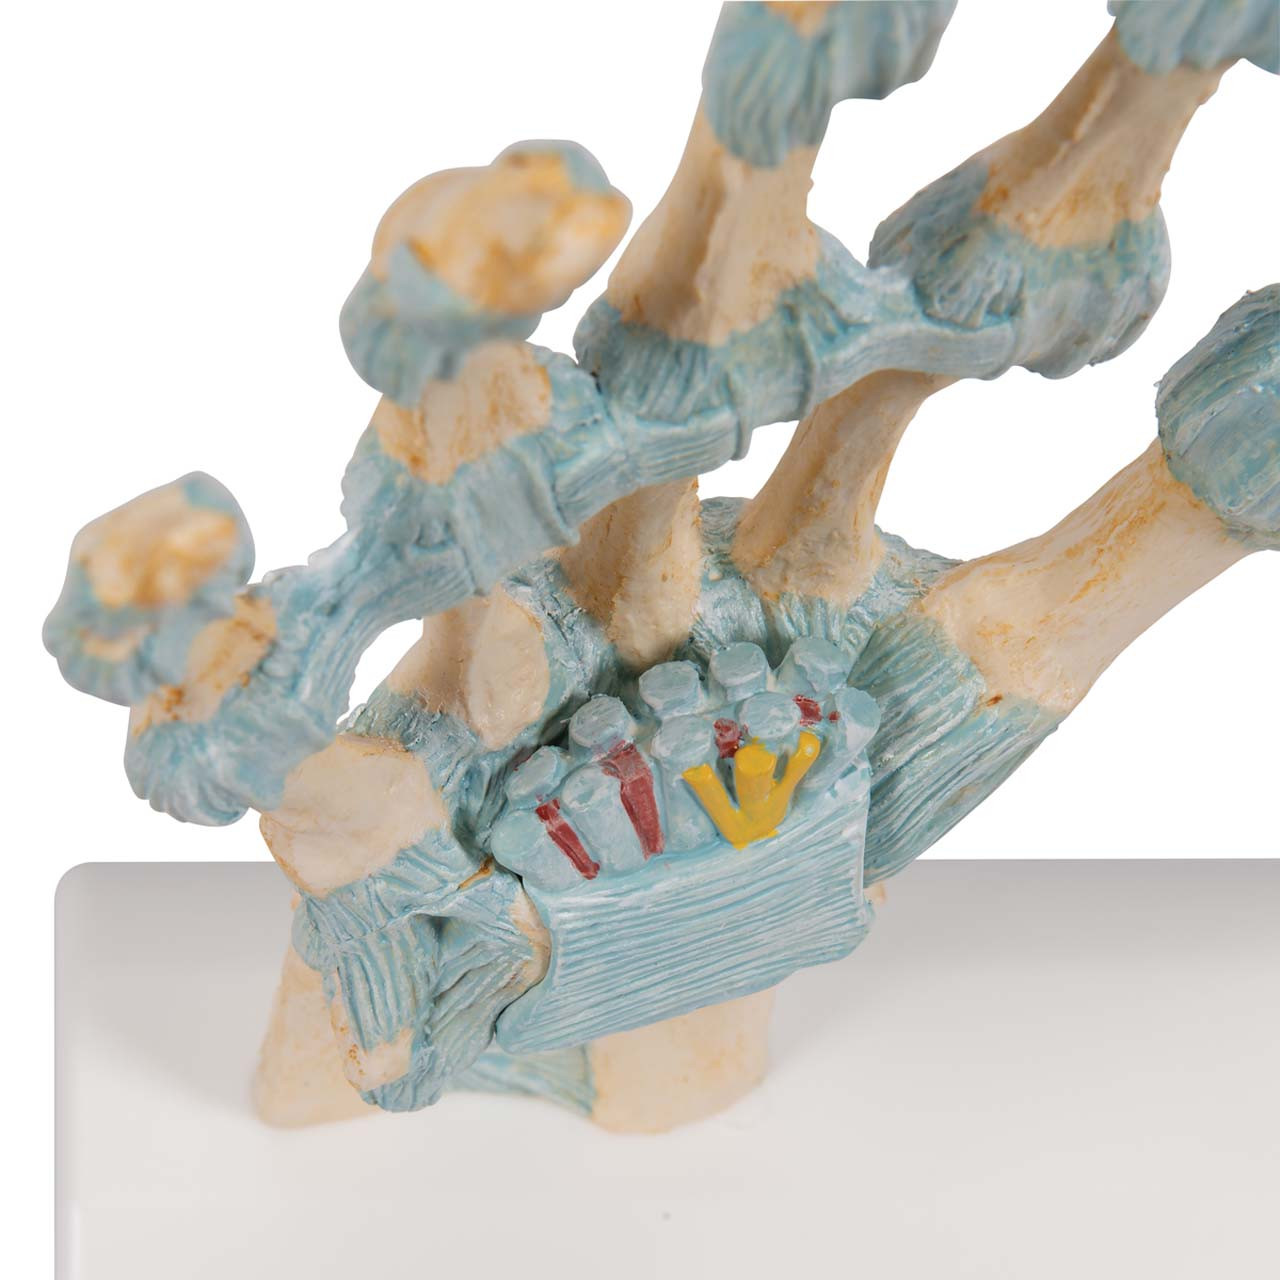 Hand Skeleton Model with Ligaments and Carpal Tunnel